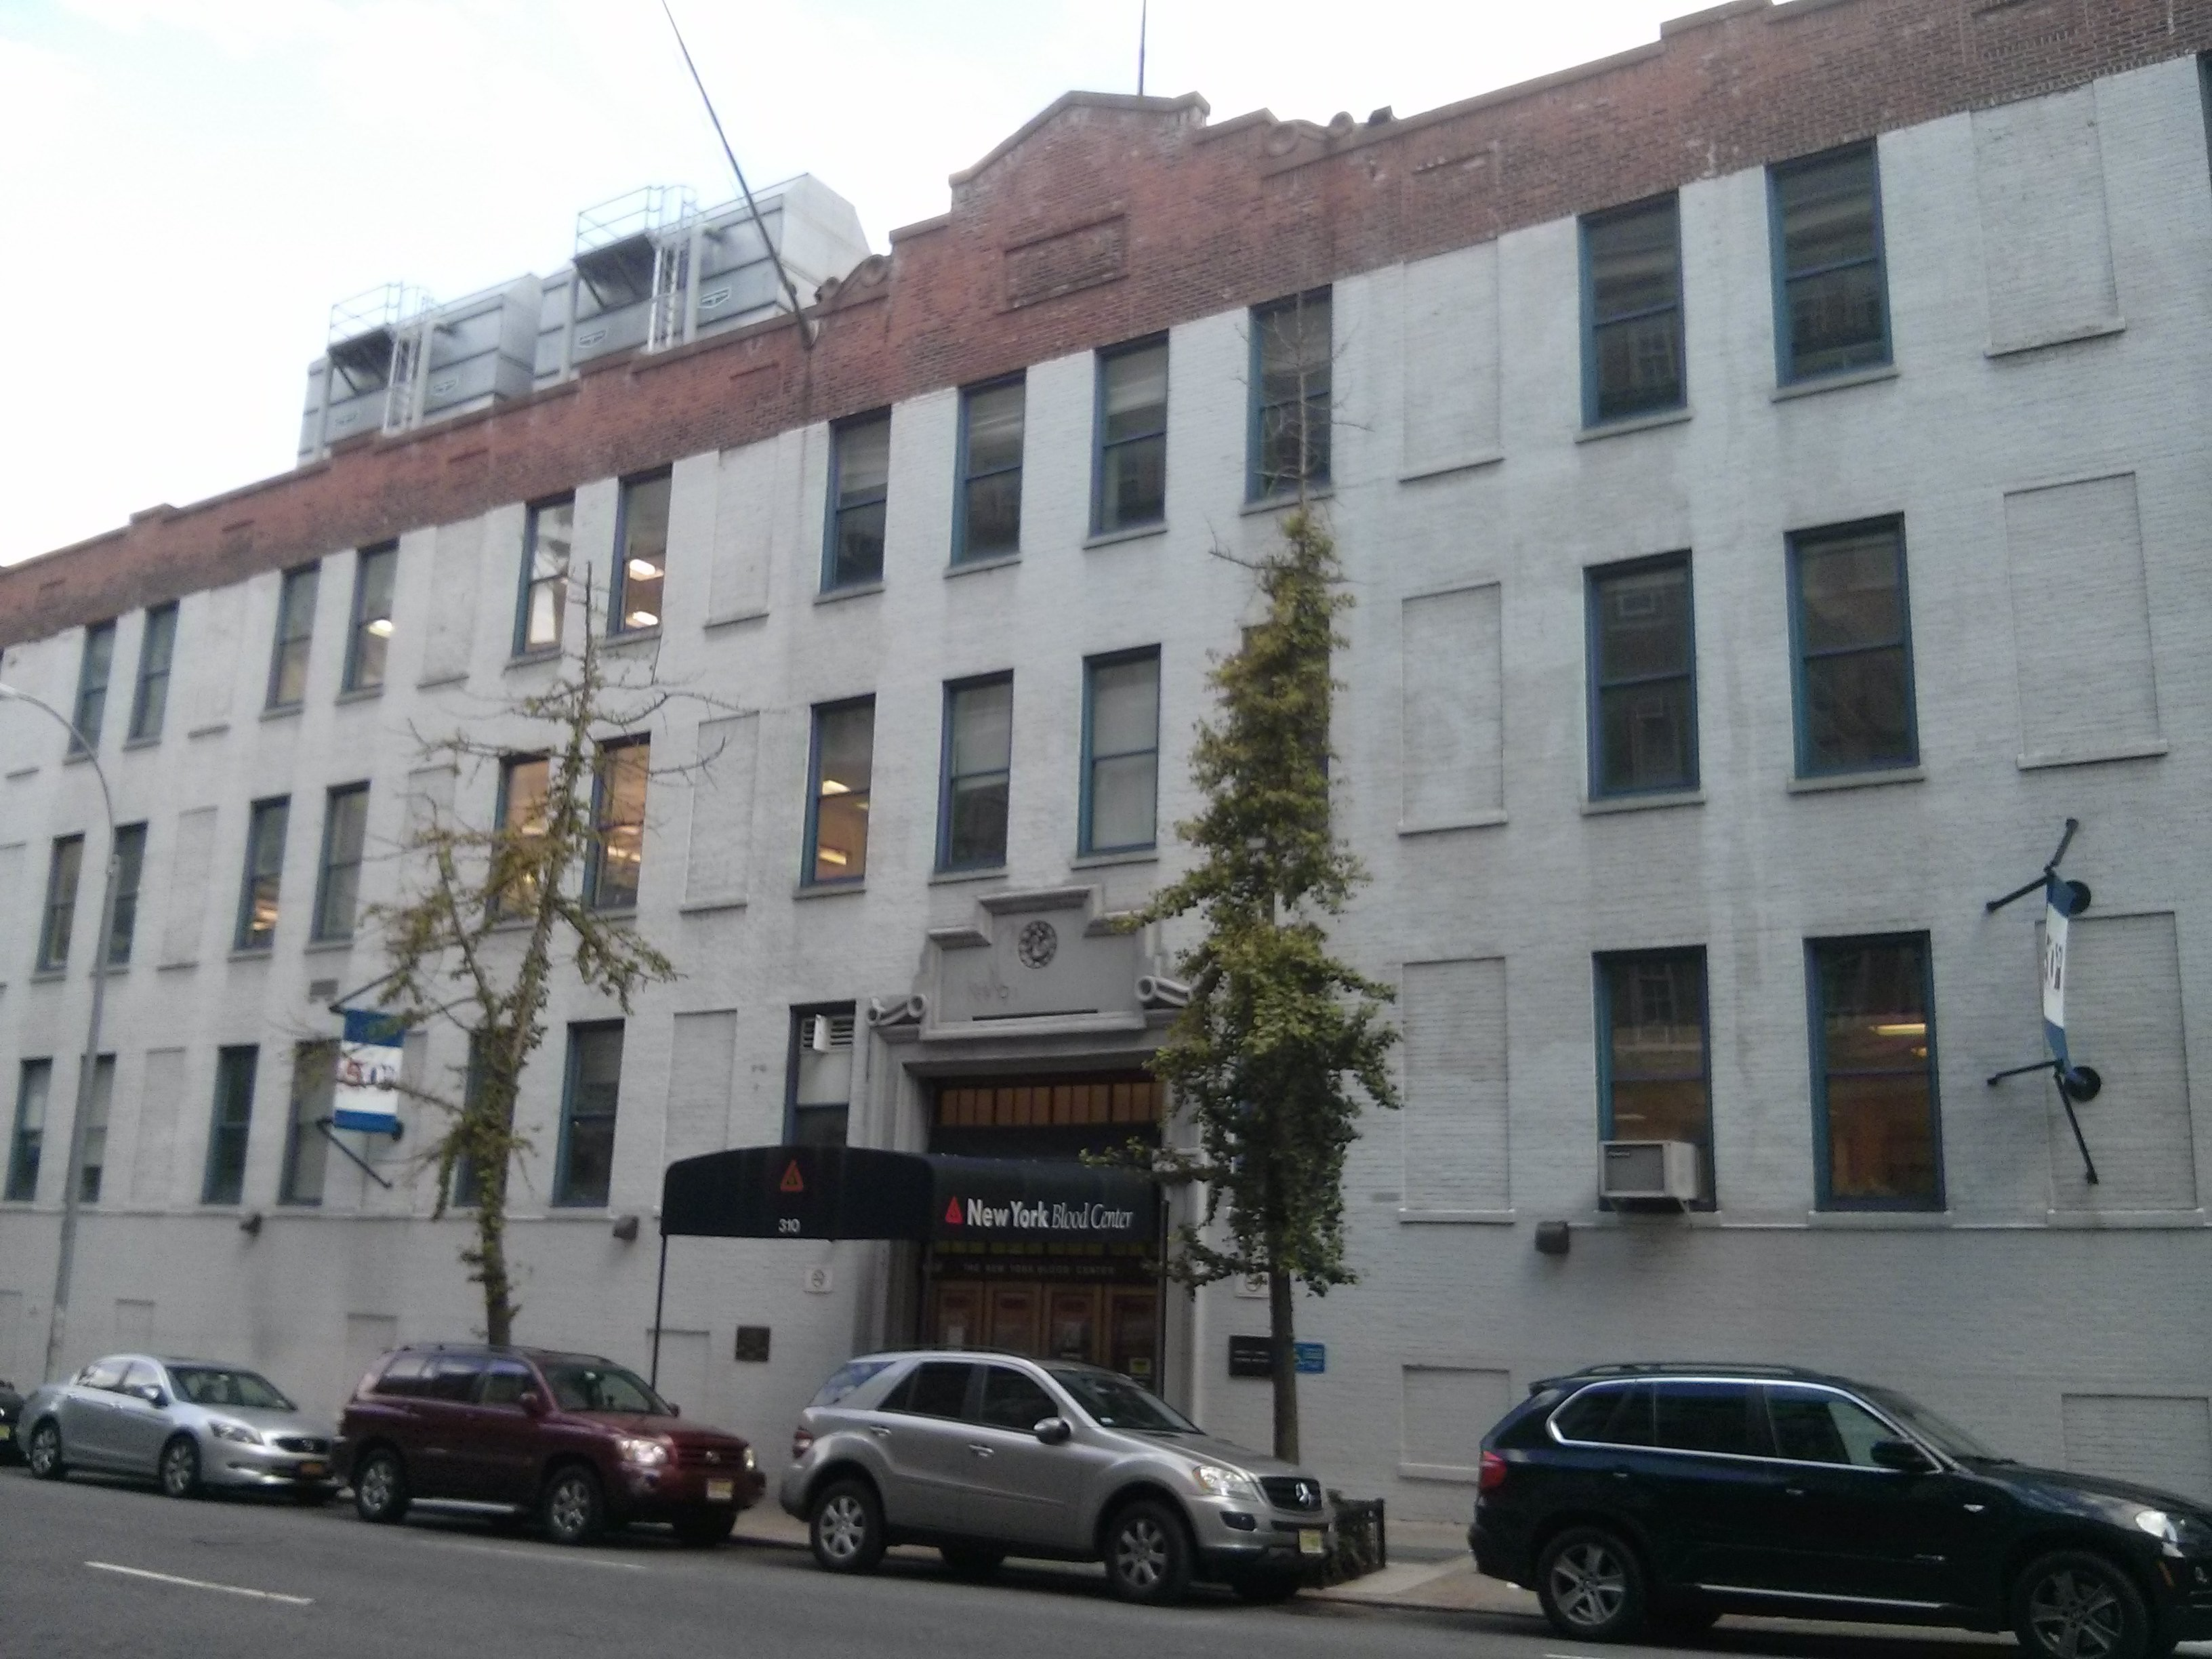 A gray four story building on the outside.